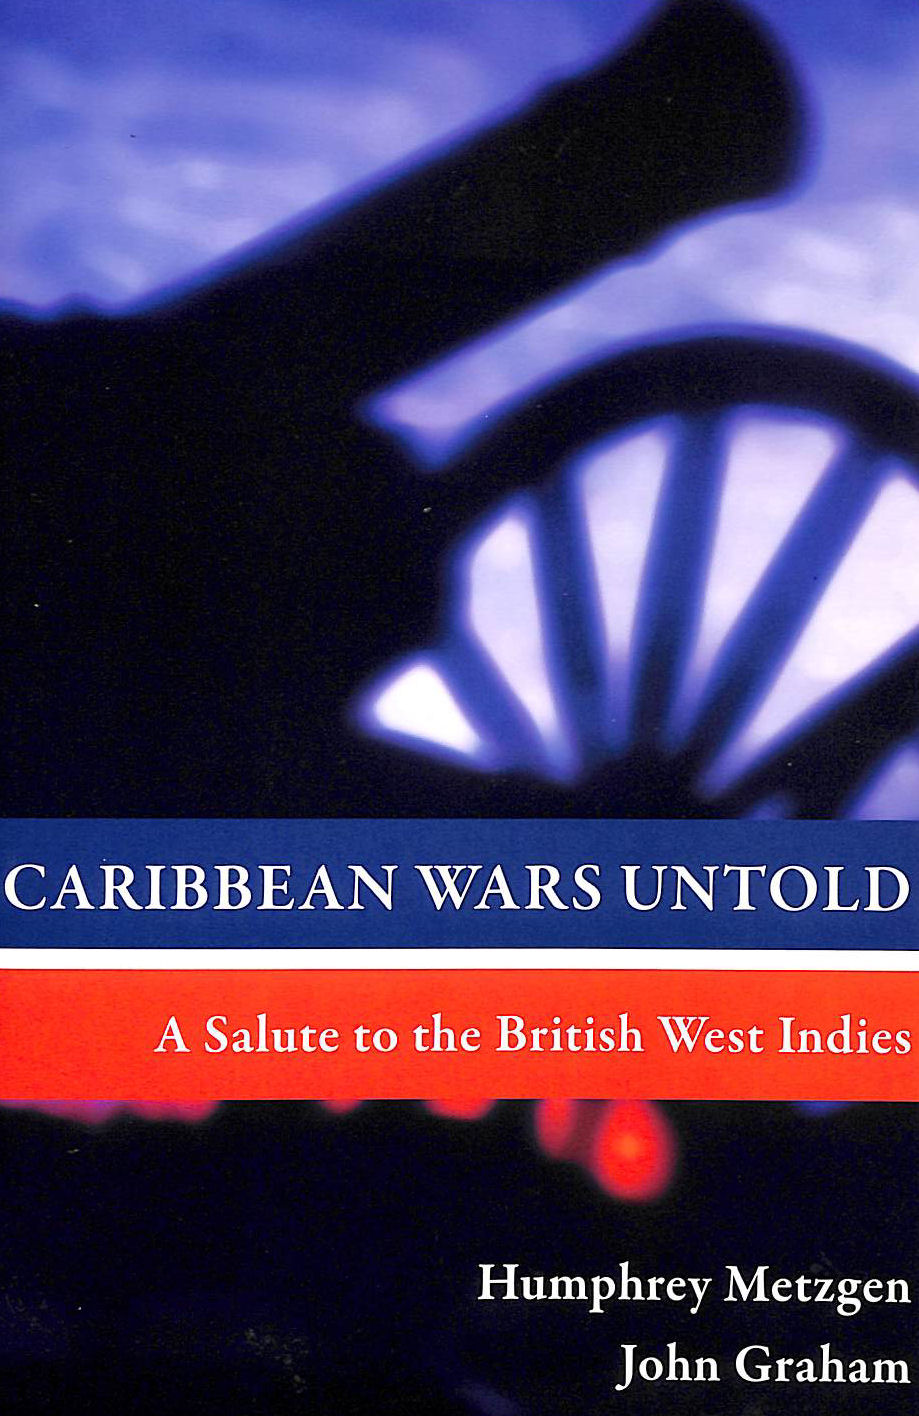 Image for Caribbean Wars Untold: A Salute to the British West Indies